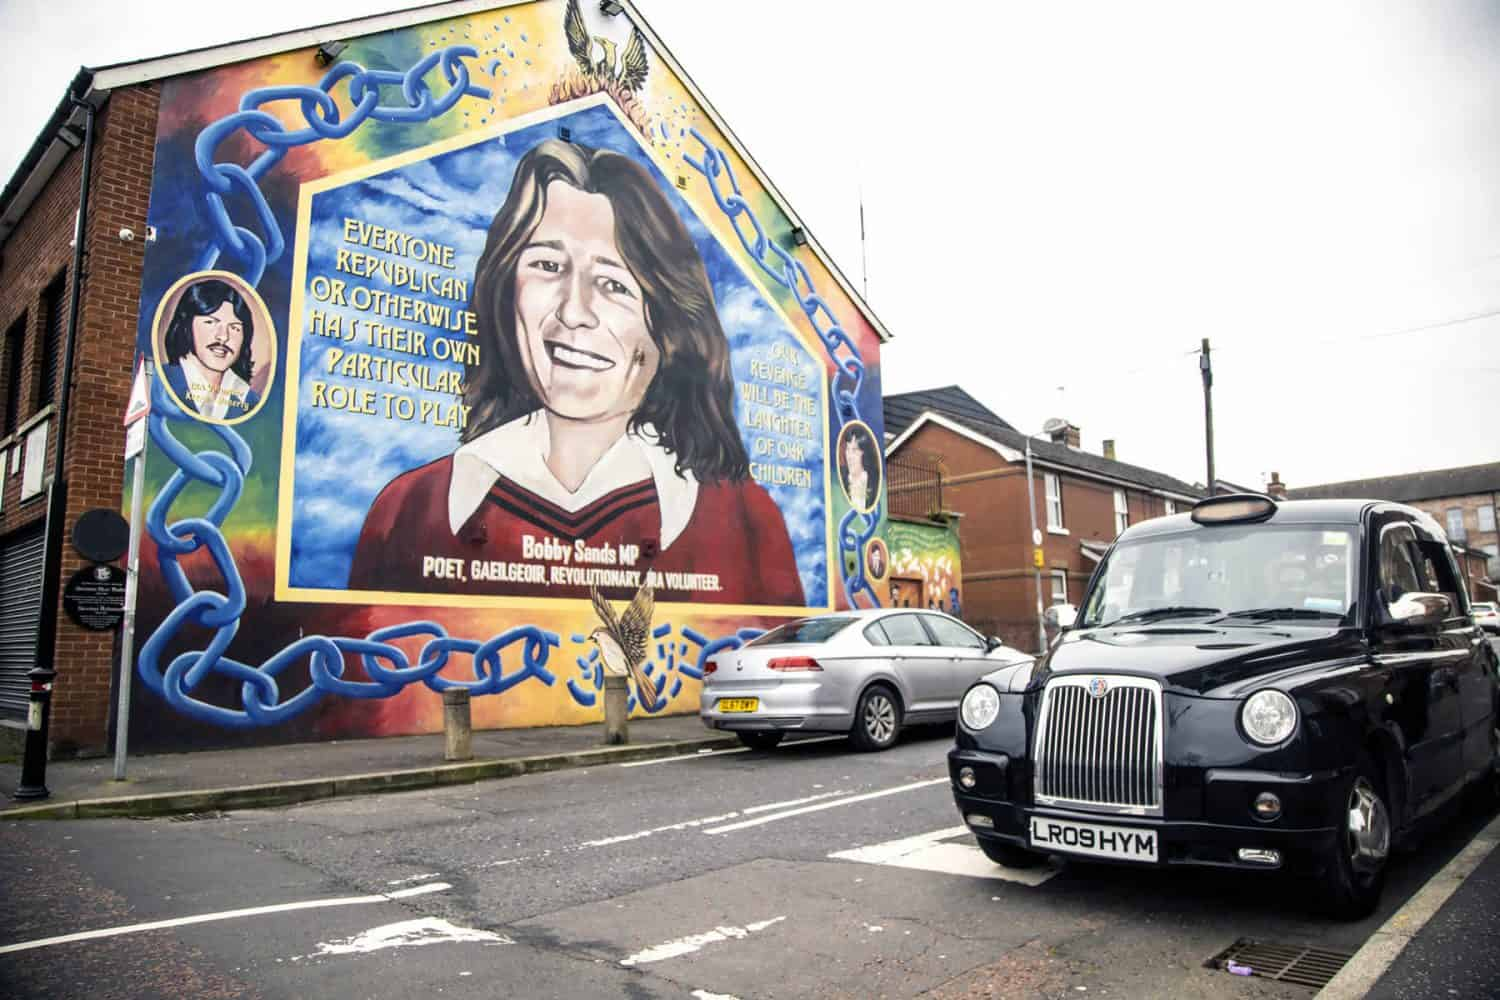 Bobby Sands Mural in Falls Road Belfast with Black Cab Tours Taxi